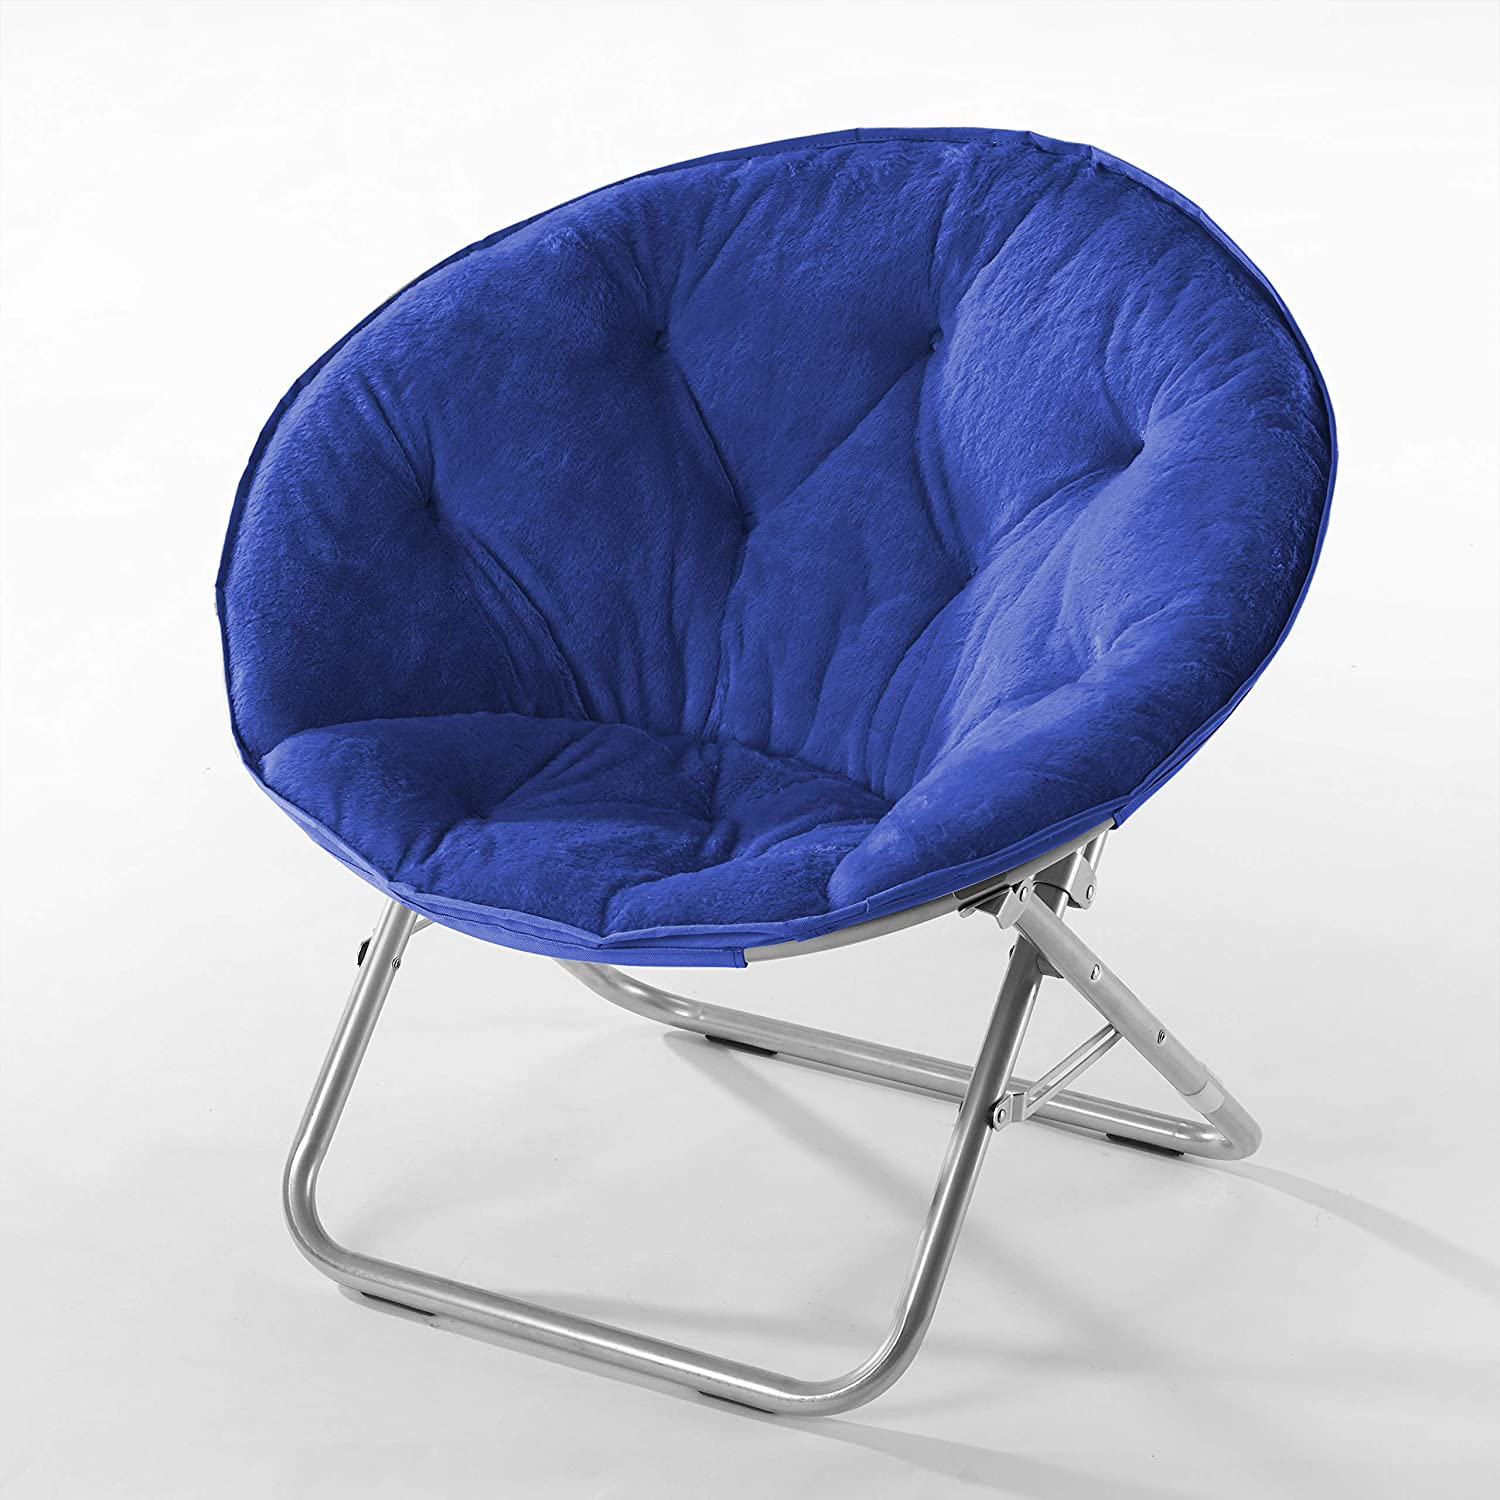 Urban Shop Faux Fur Saucer Chair with Metal Frame, One Size, Blue